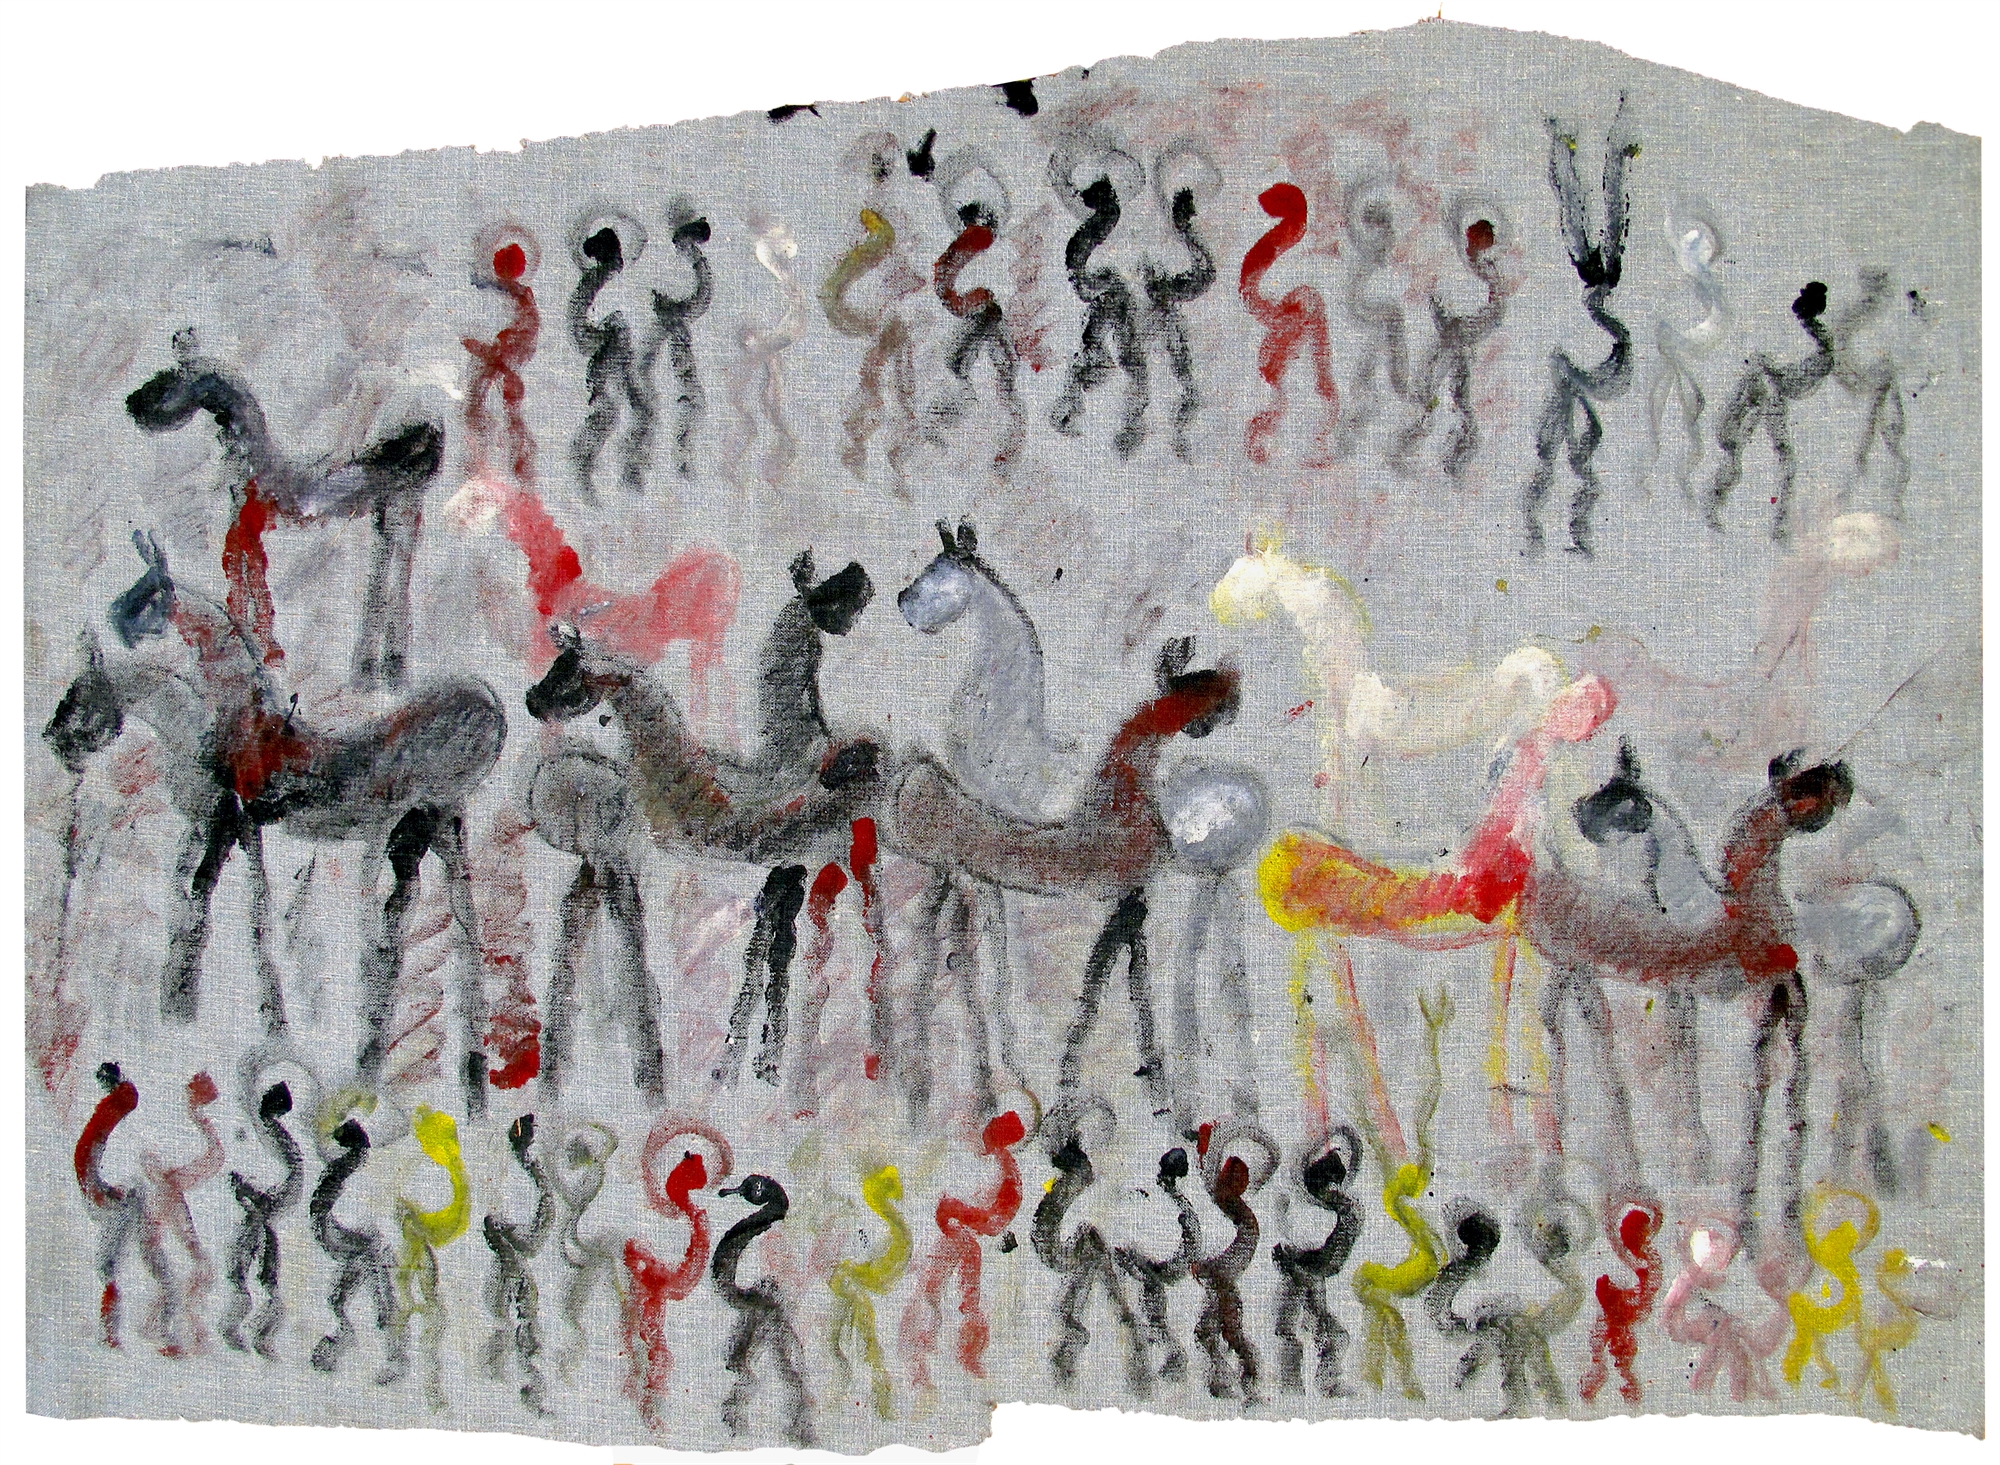 Wild Horses, Figures and Angels by Purvis Young